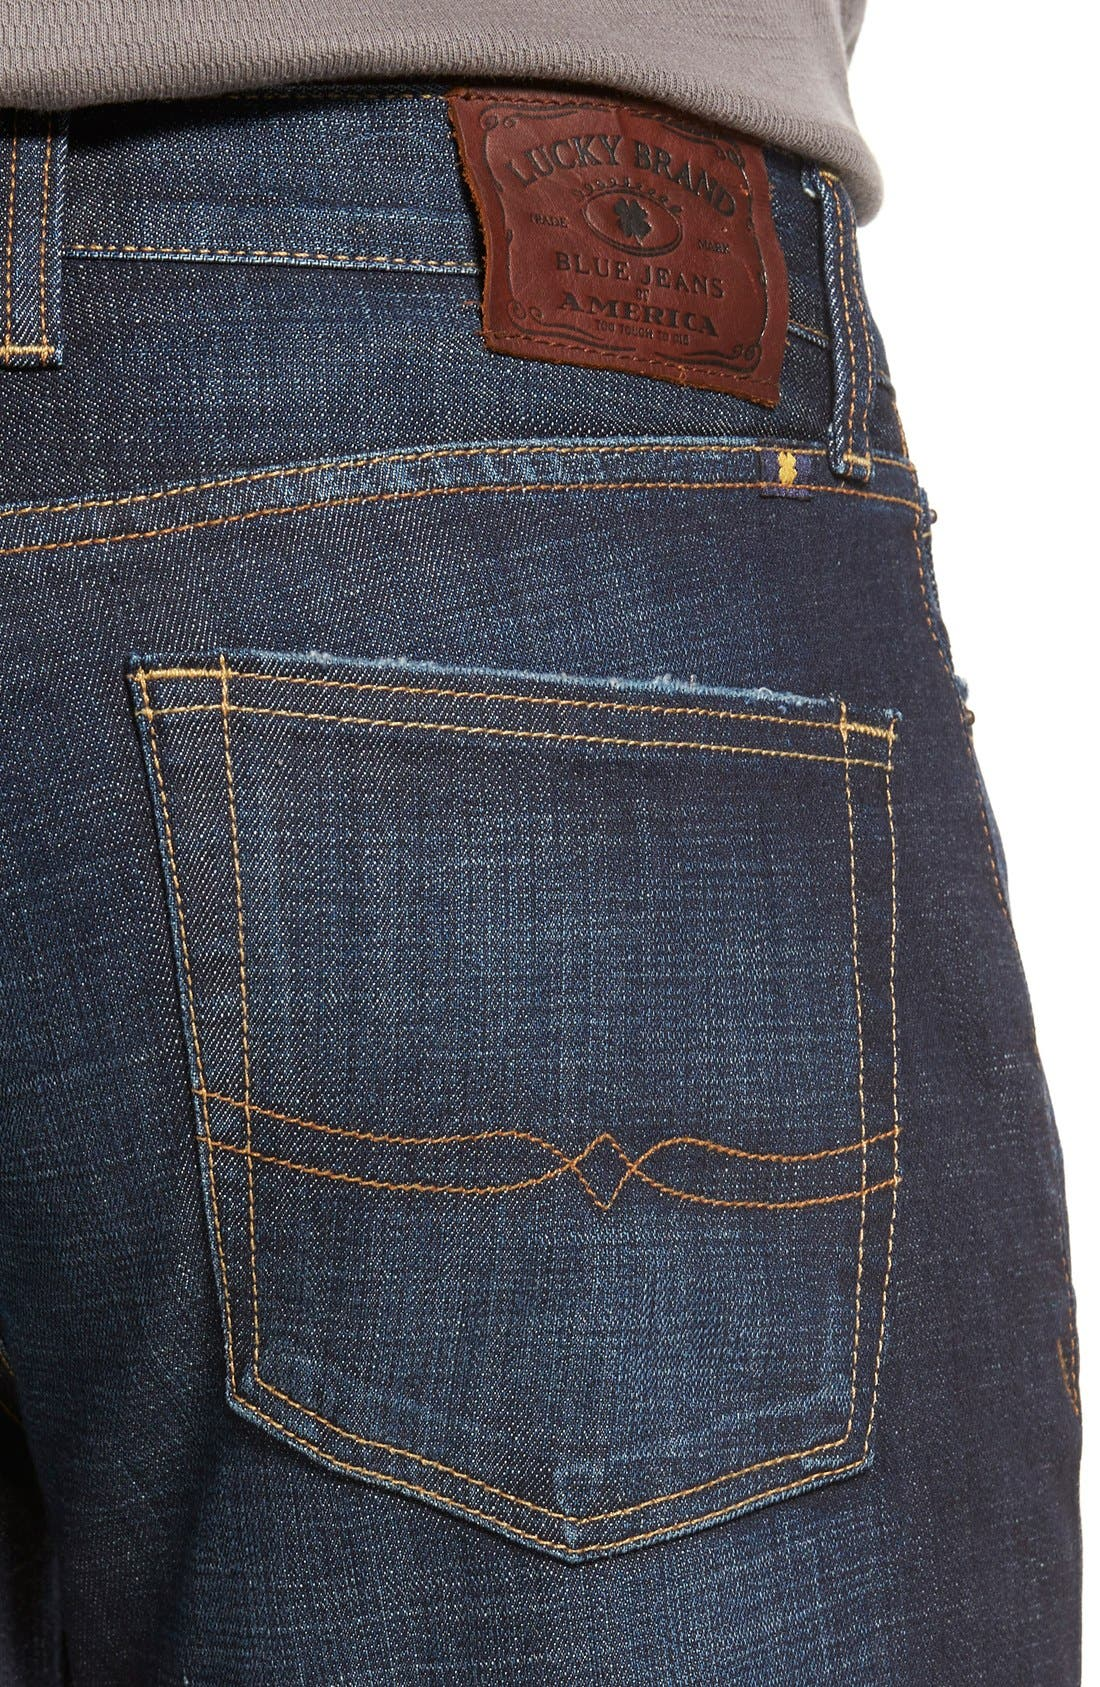 '361 Vintage' Straight Leg Jeans,                             Alternate thumbnail 4, color,                             410